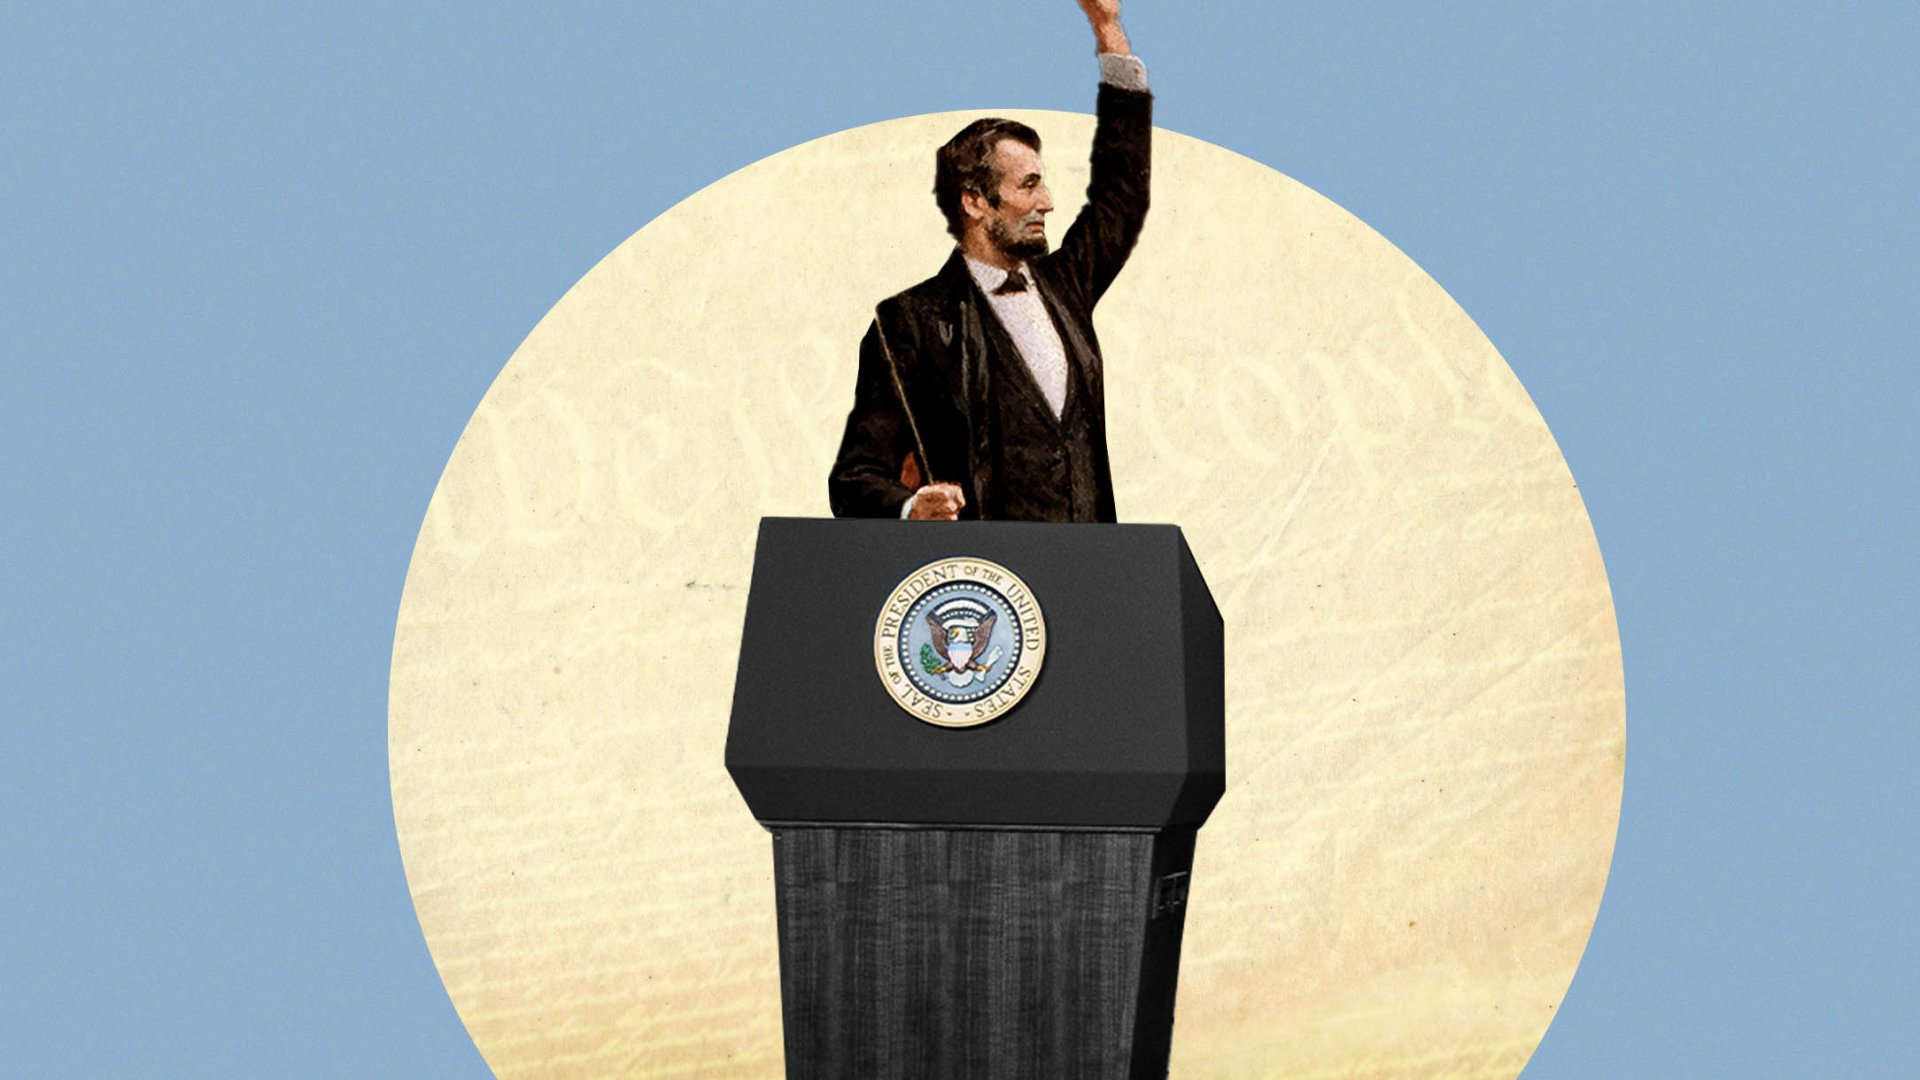 The Persuasion Secret You Can Learn From Abraham Lincoln